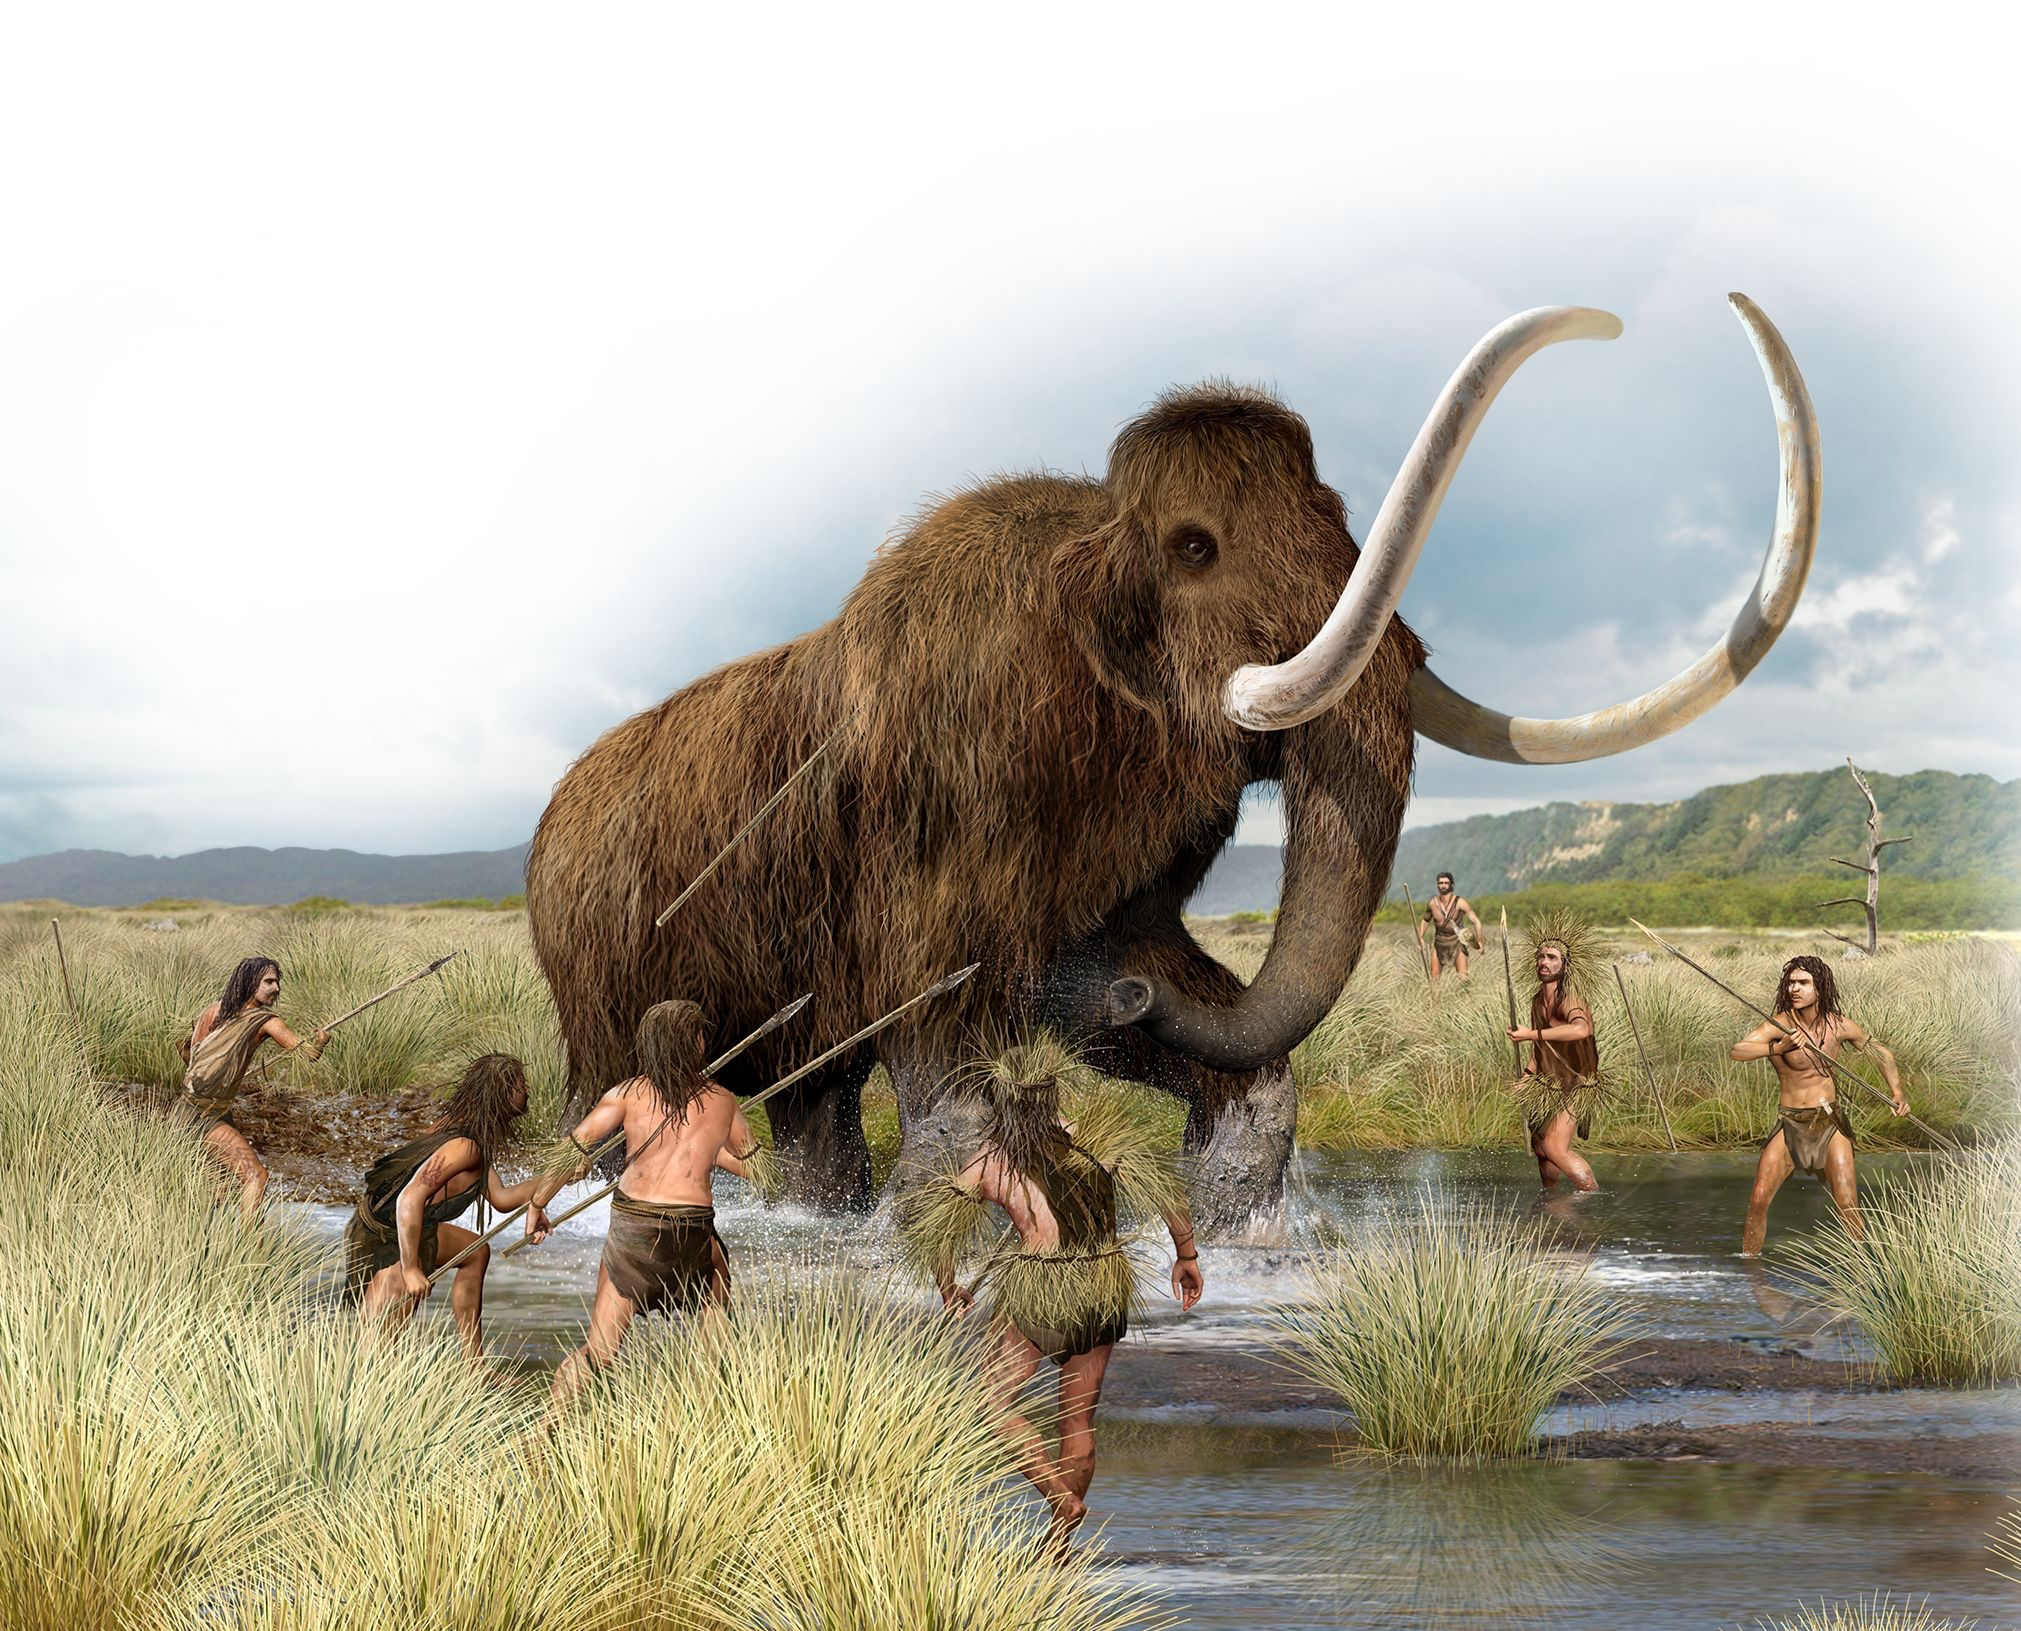 Hunting wooly mammoth